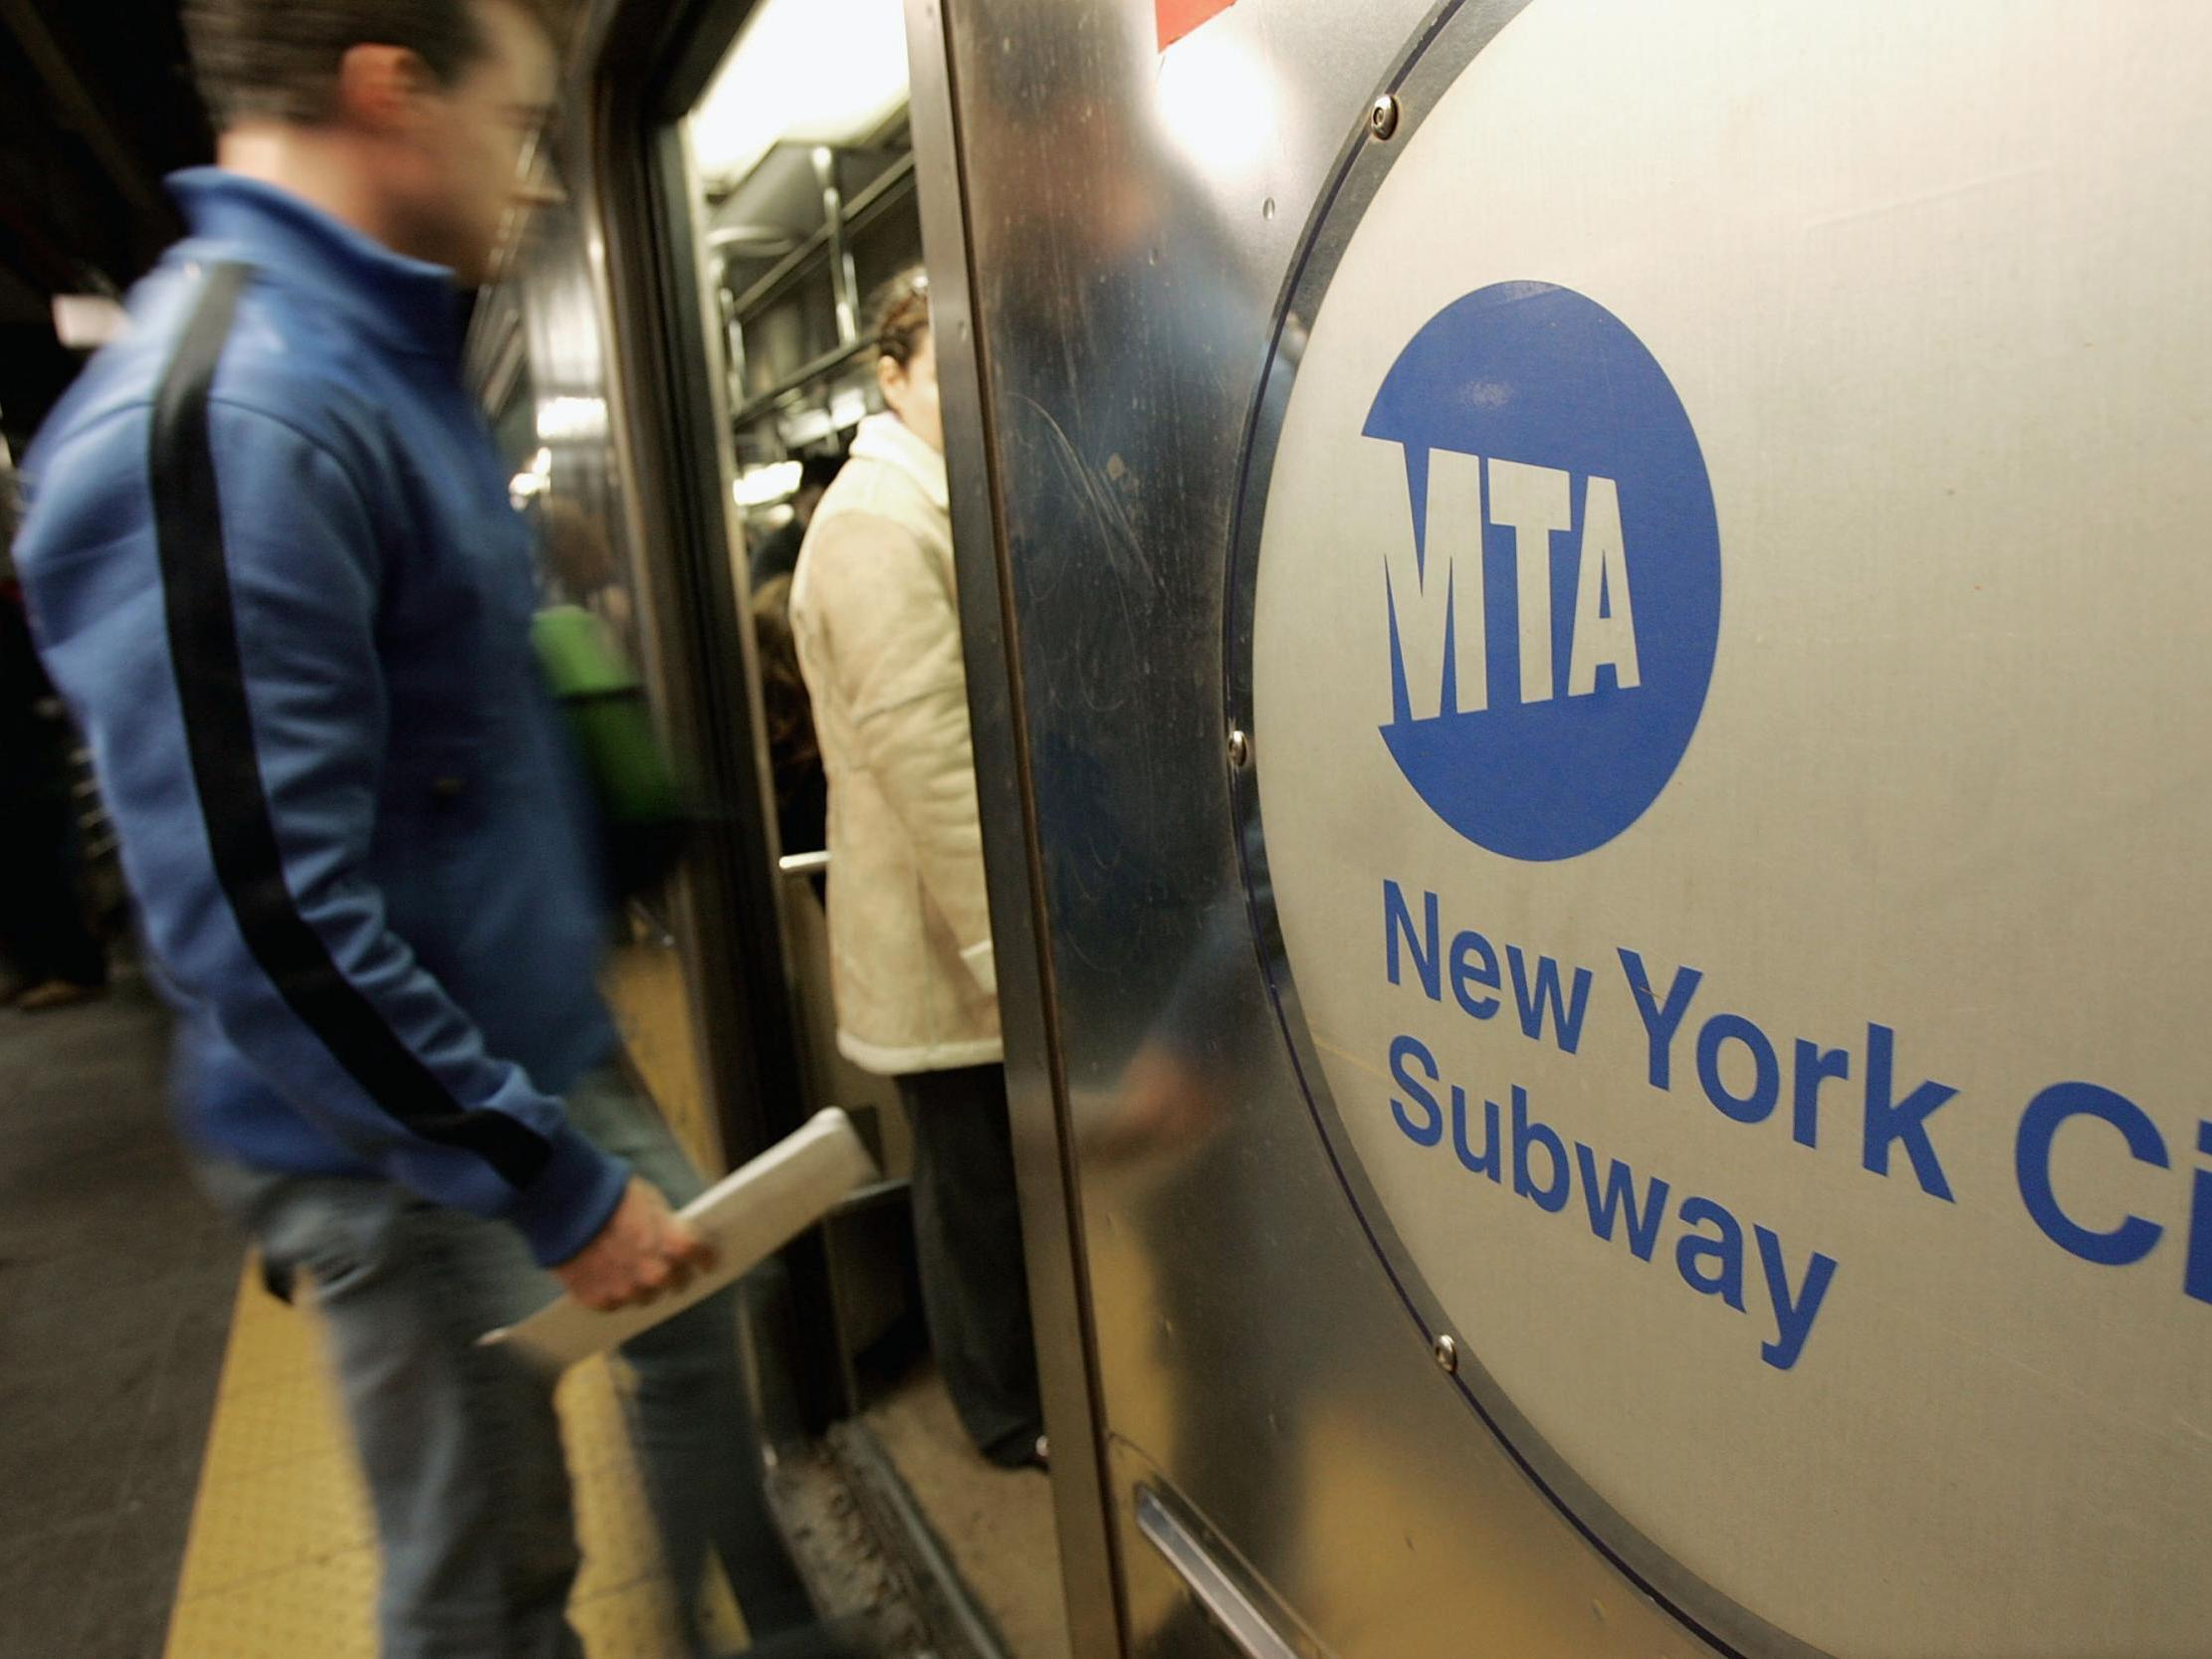 Coronavirus: New York transit vows to sanitise trains and buses every three days